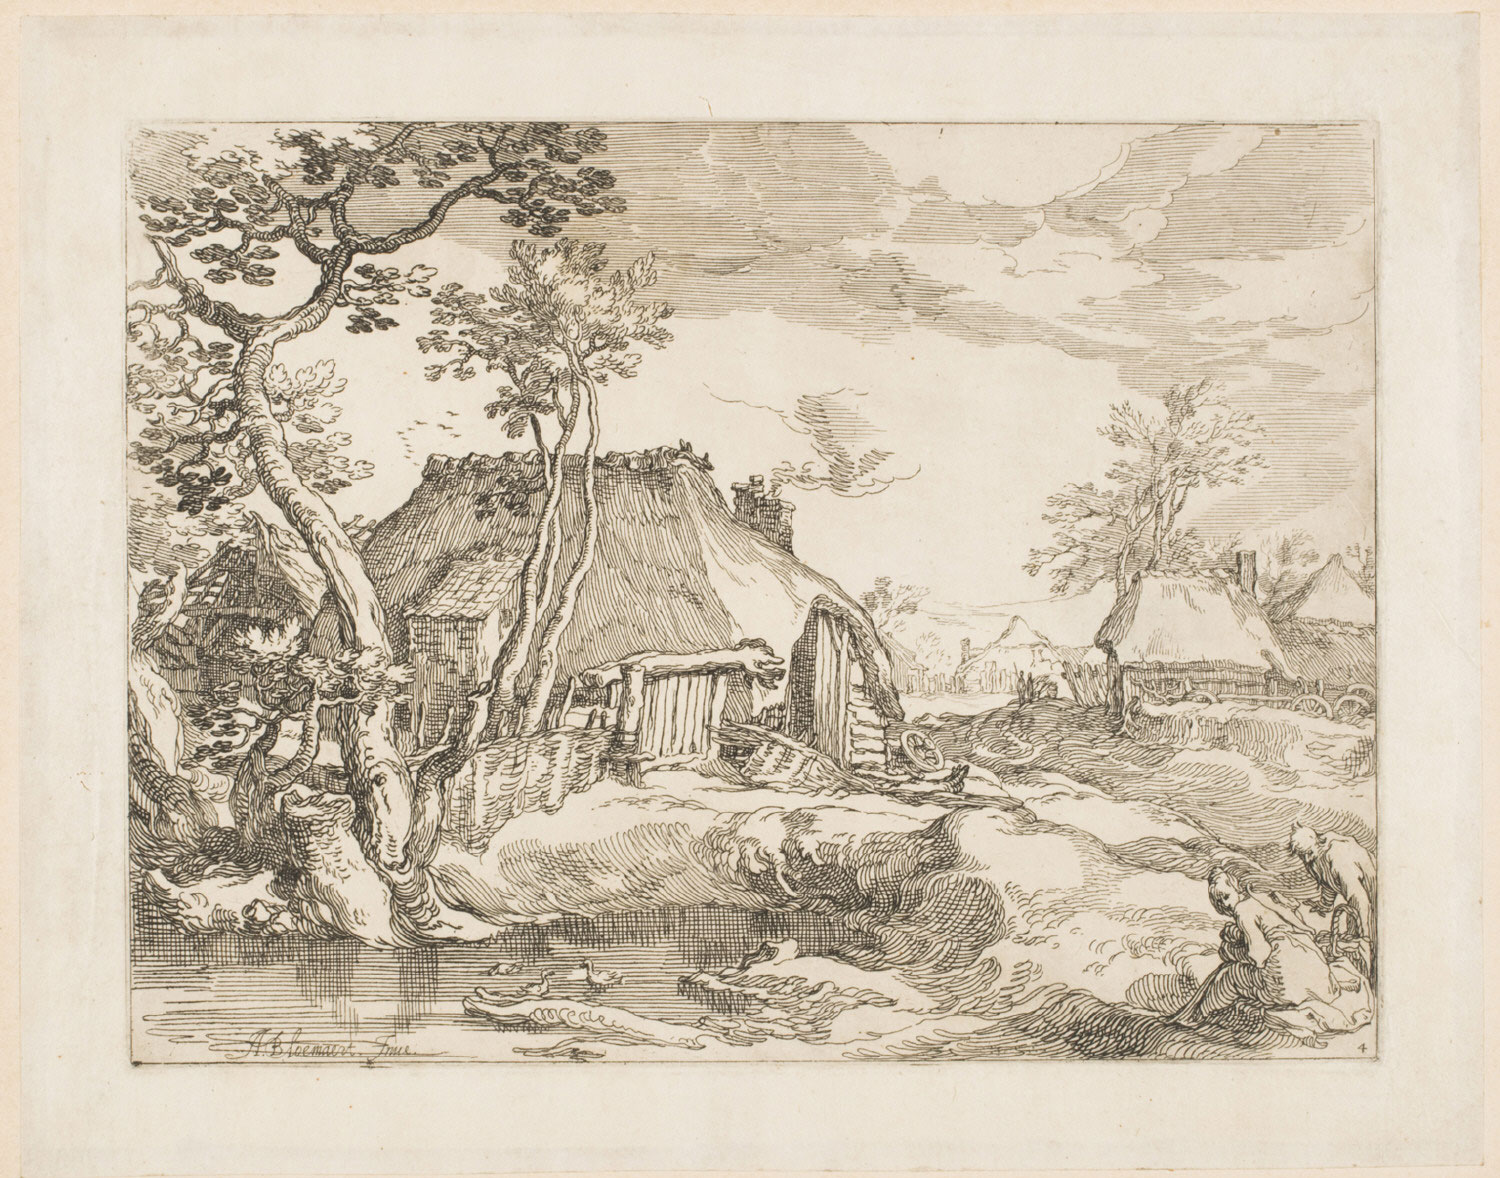 Landscape with Farmhouses, with a Picnicking Couple